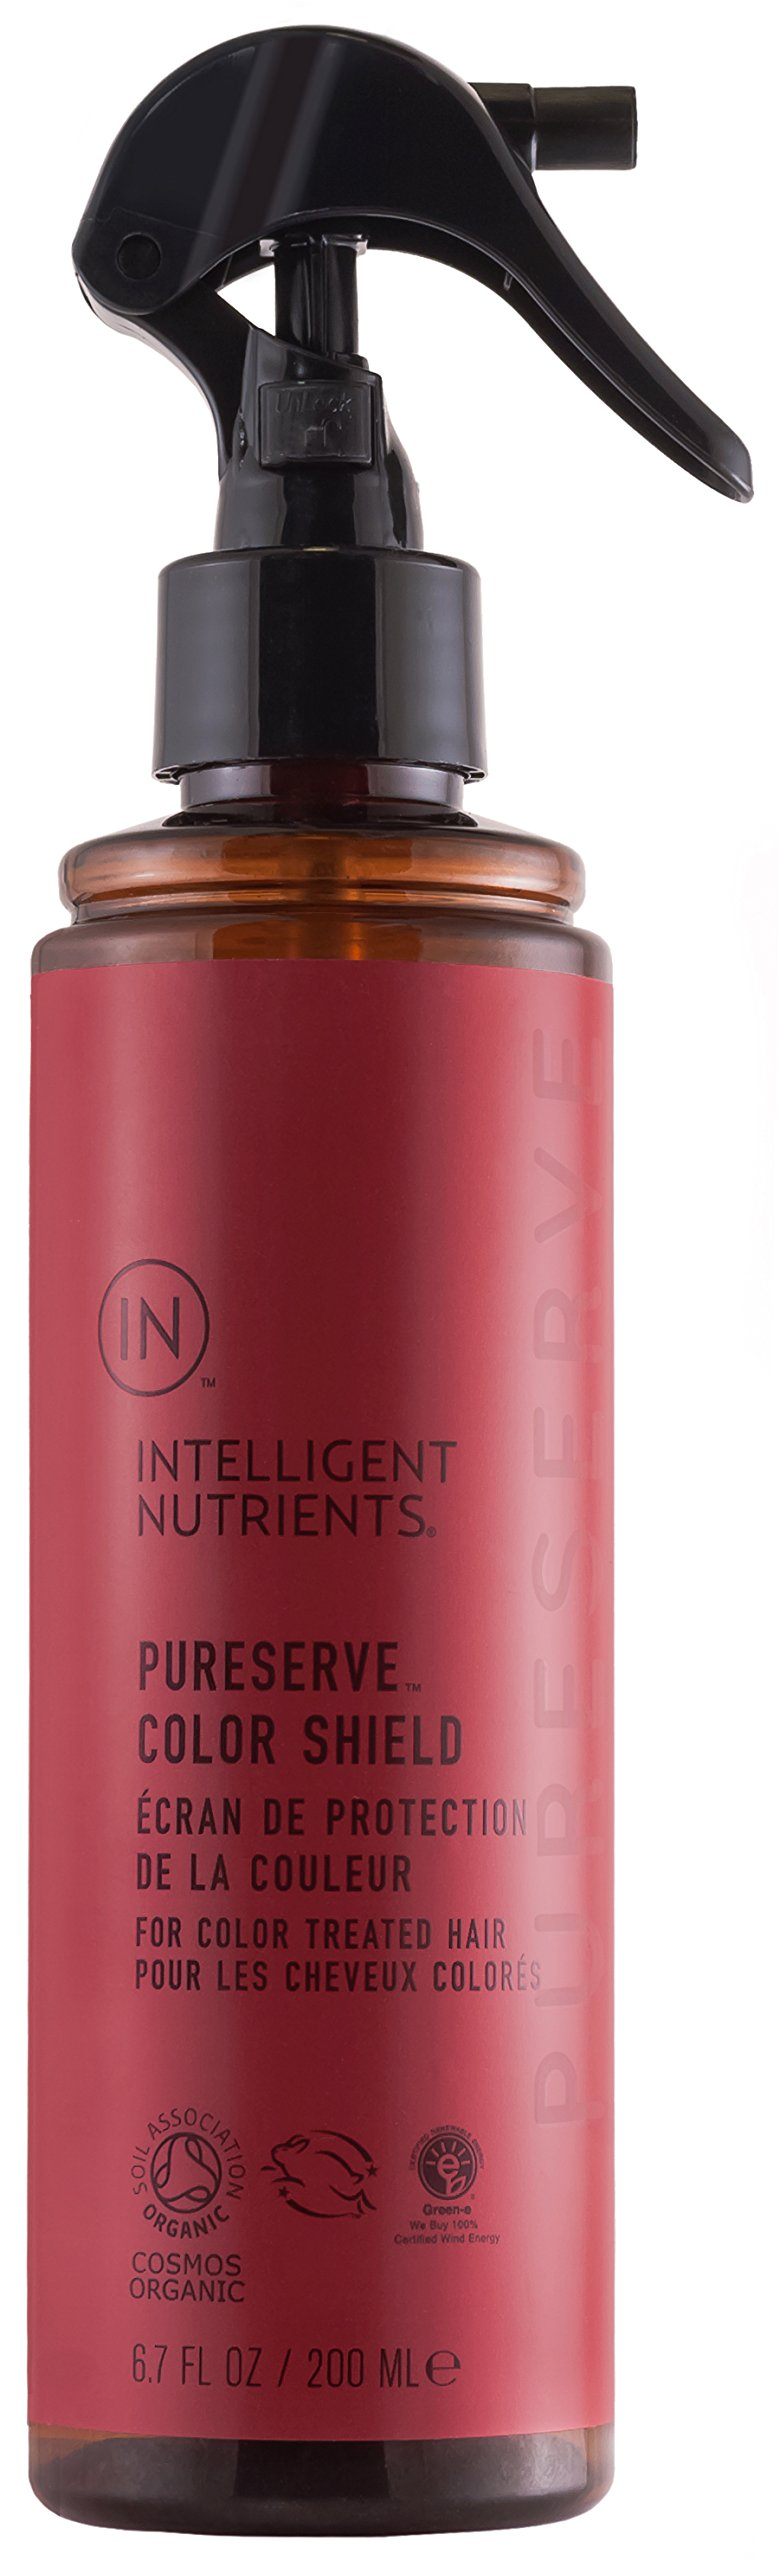 Intelligent Nutrients PureServe Color Shield - Spray for Color-Treated Hair, Protect & Extend Hair Color (6.7 oz)